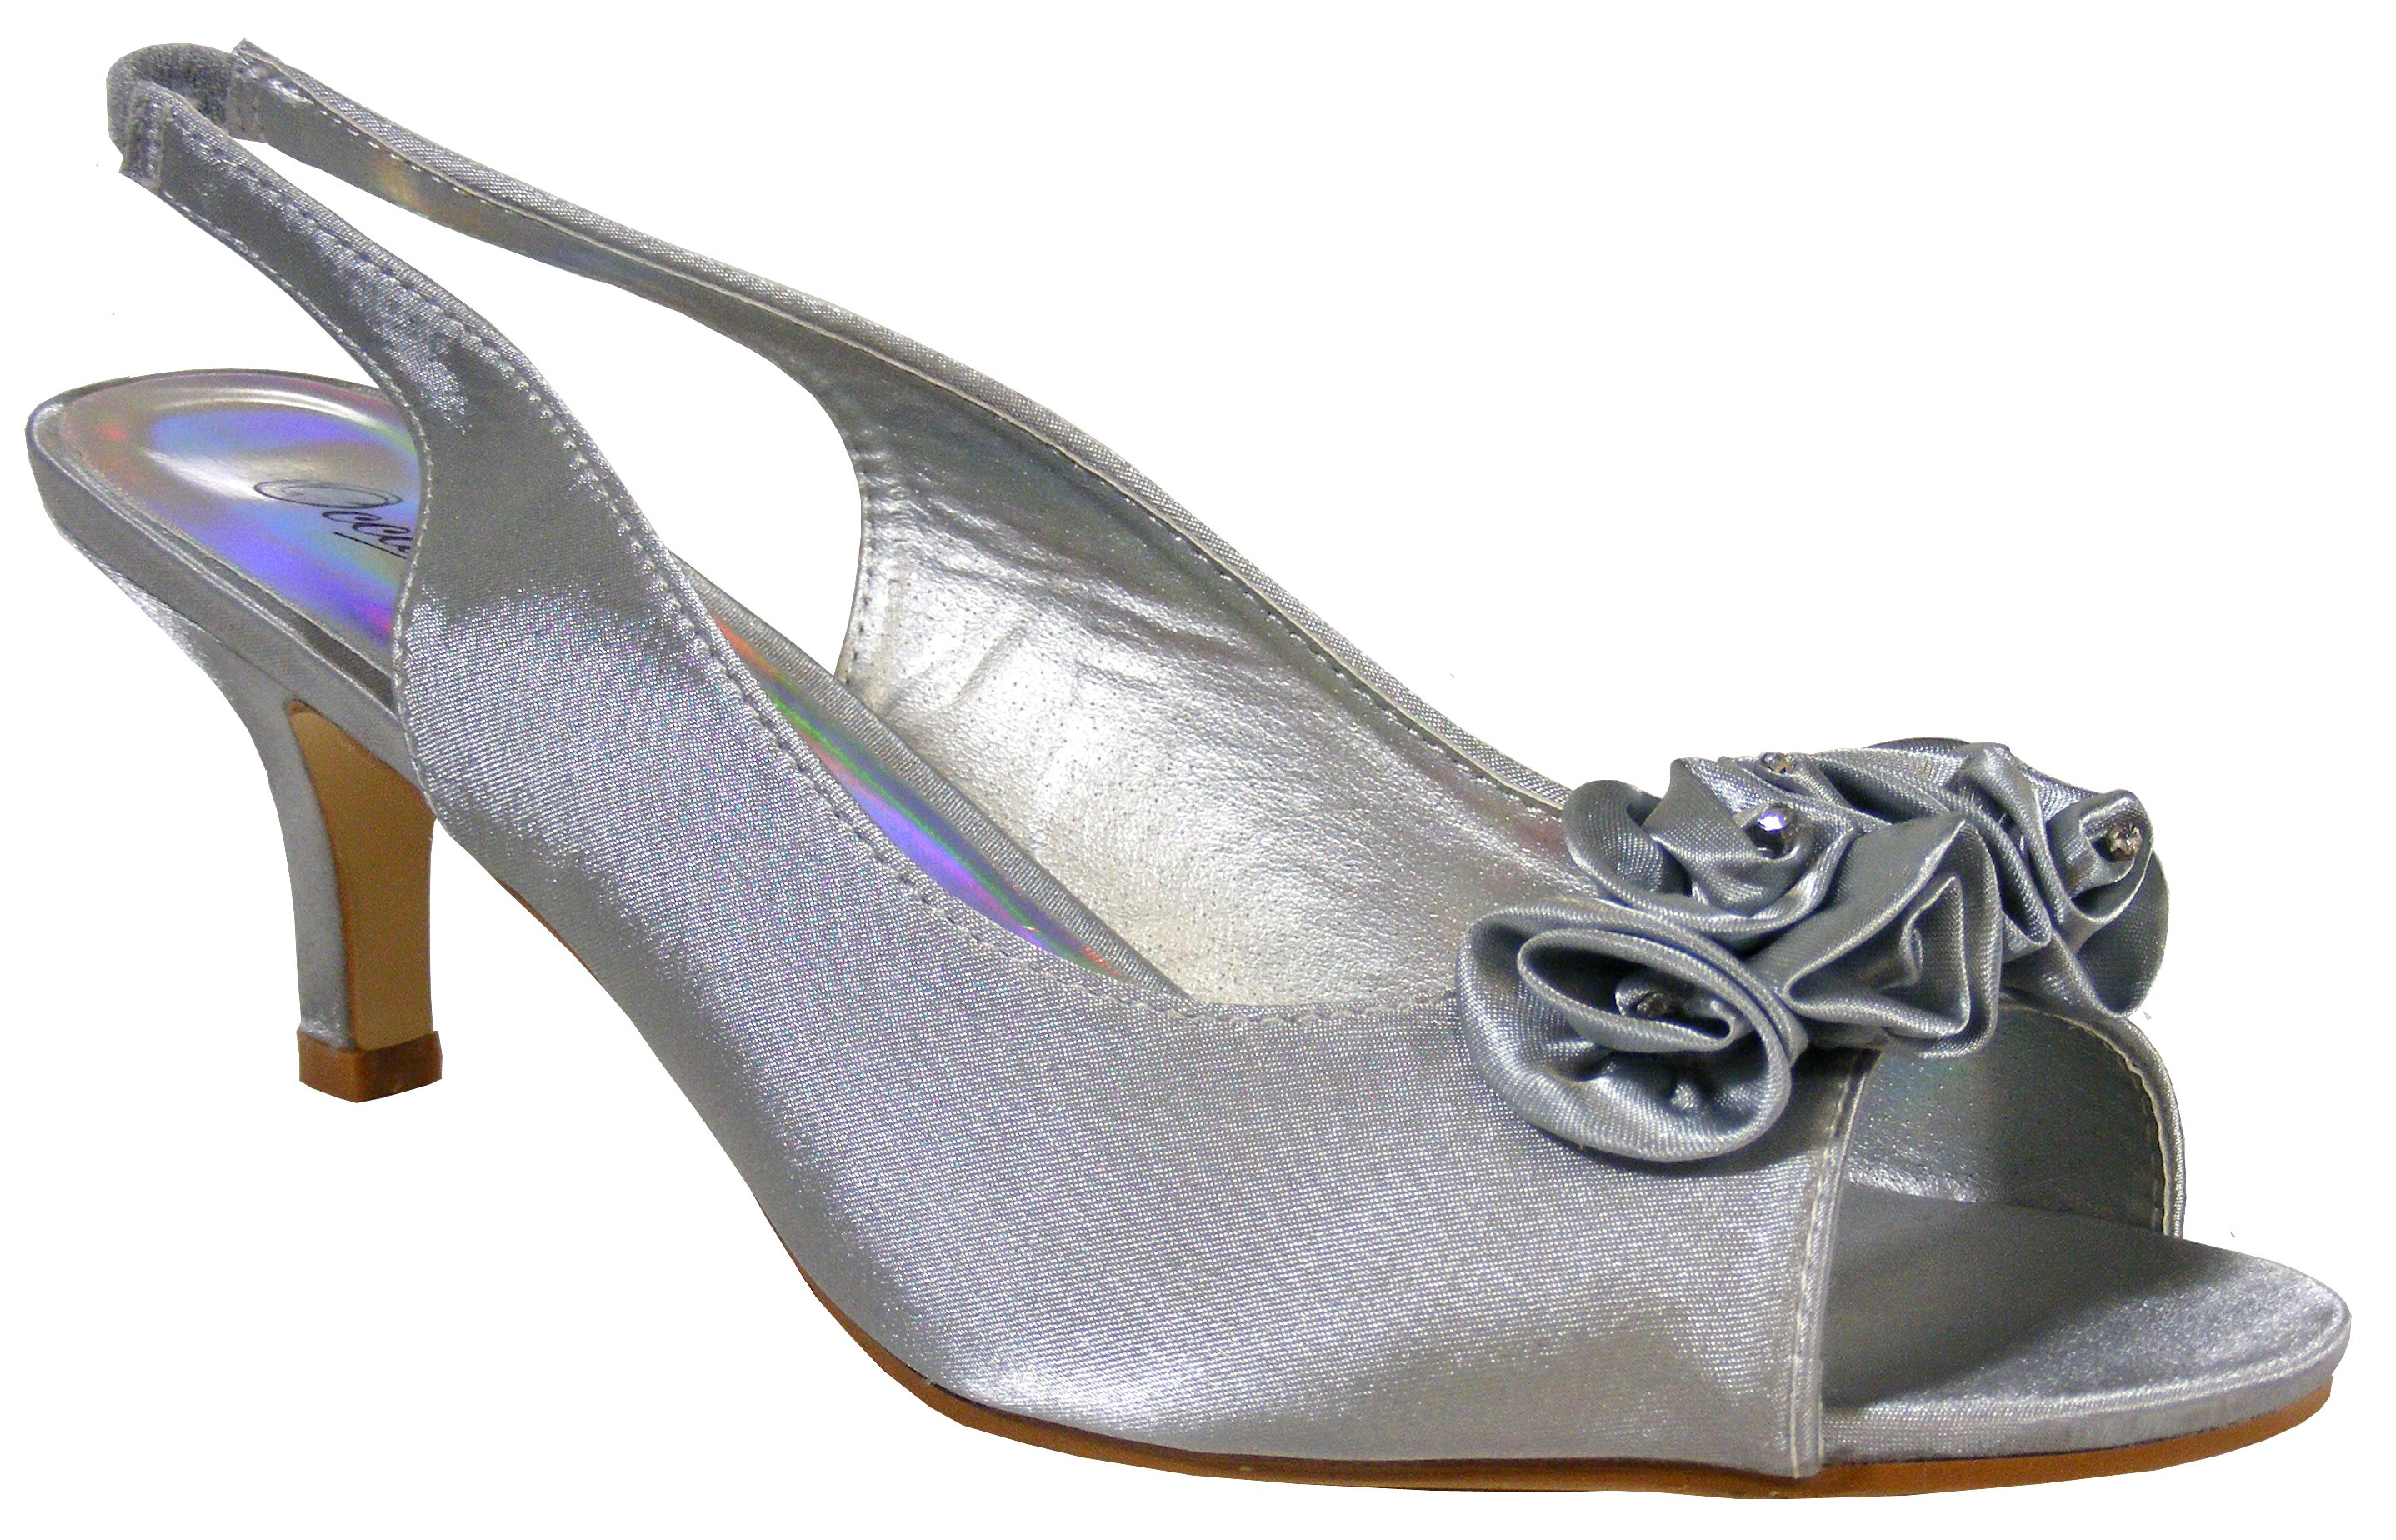 Ladies Silver Soft Satin Diamante Slingbacks Low Heels Bridesmaids Wedding Shoes